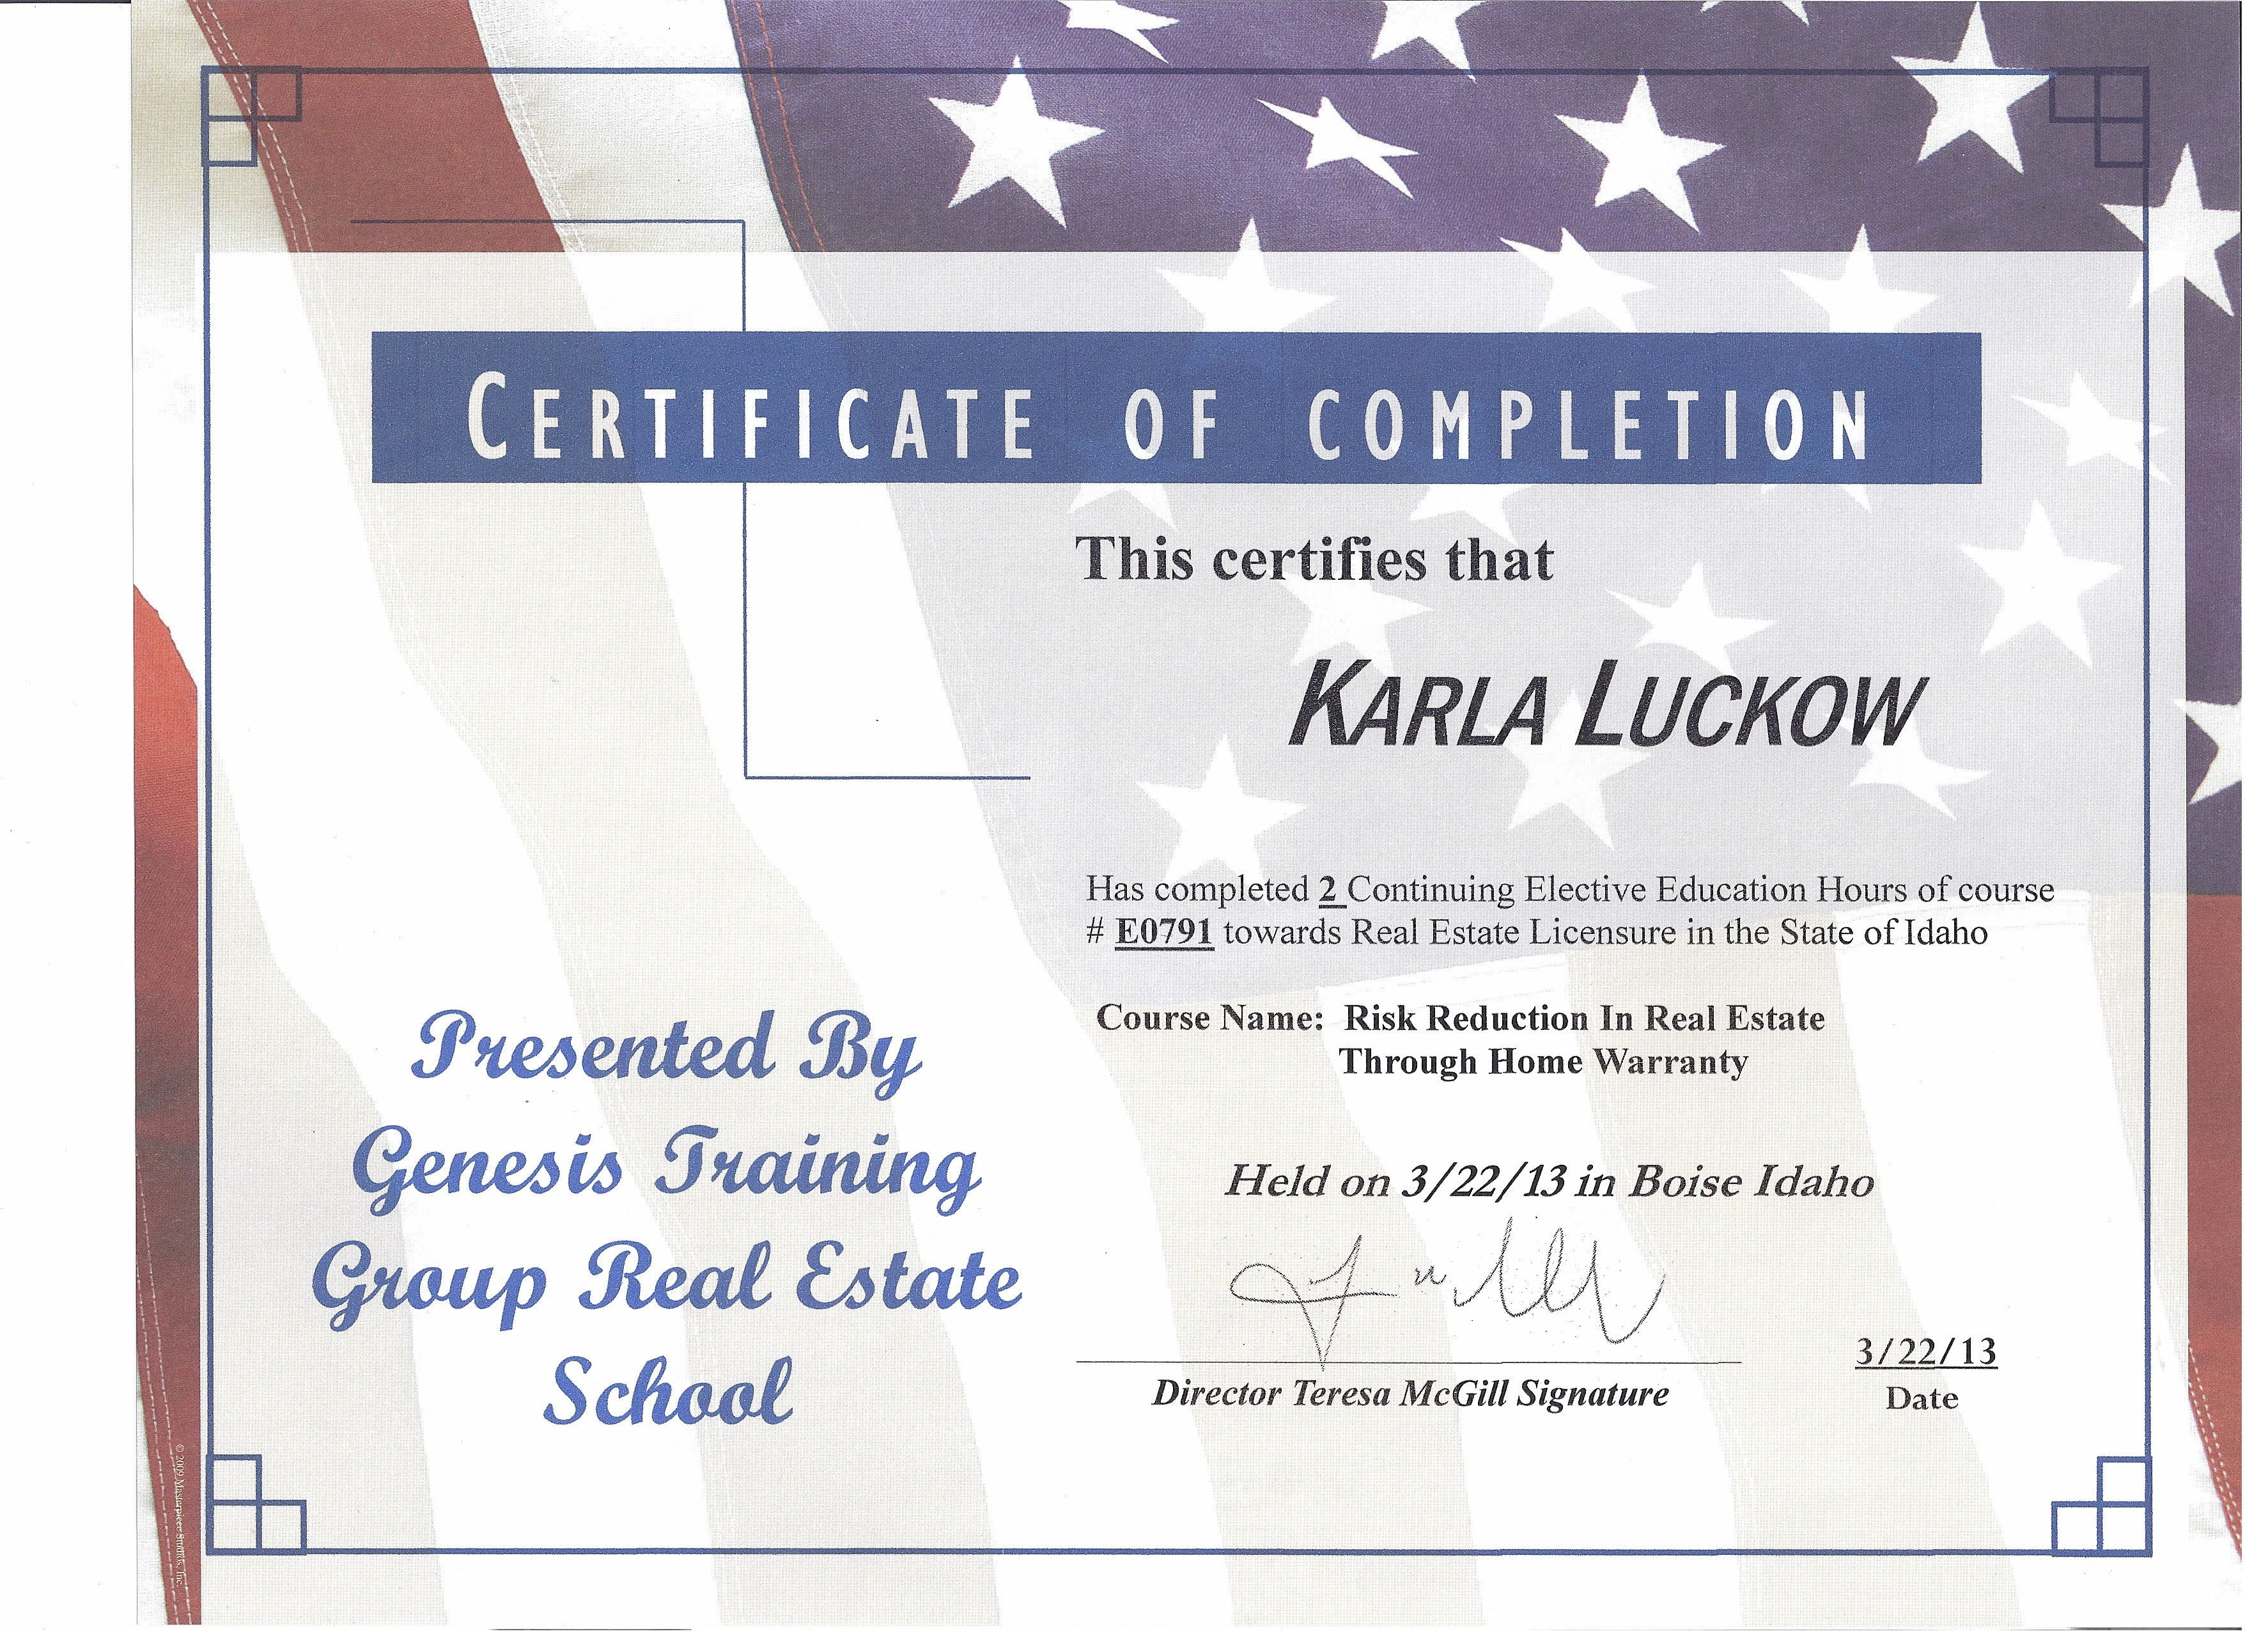 Risk Reduction In Real Estate Through Home Warranty Class